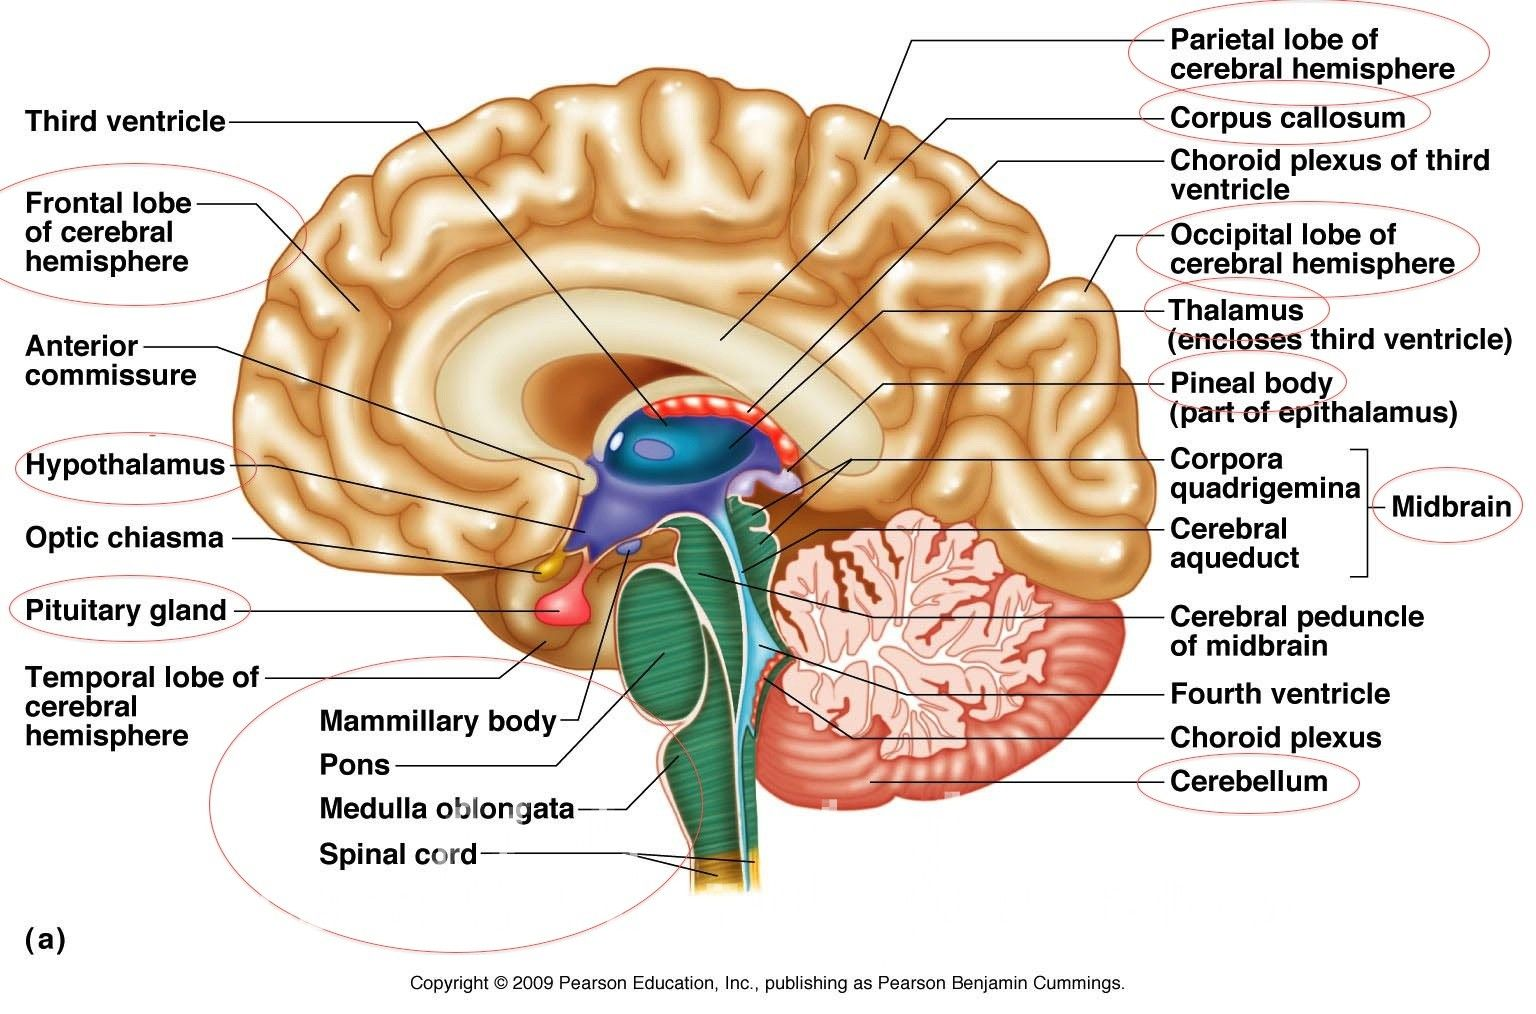 anatomy and physiology of the brain Together, the brain and spinal cord are known as the central nervous system (cn the brain is a spongy organ made up of nerve and supportive tissues.